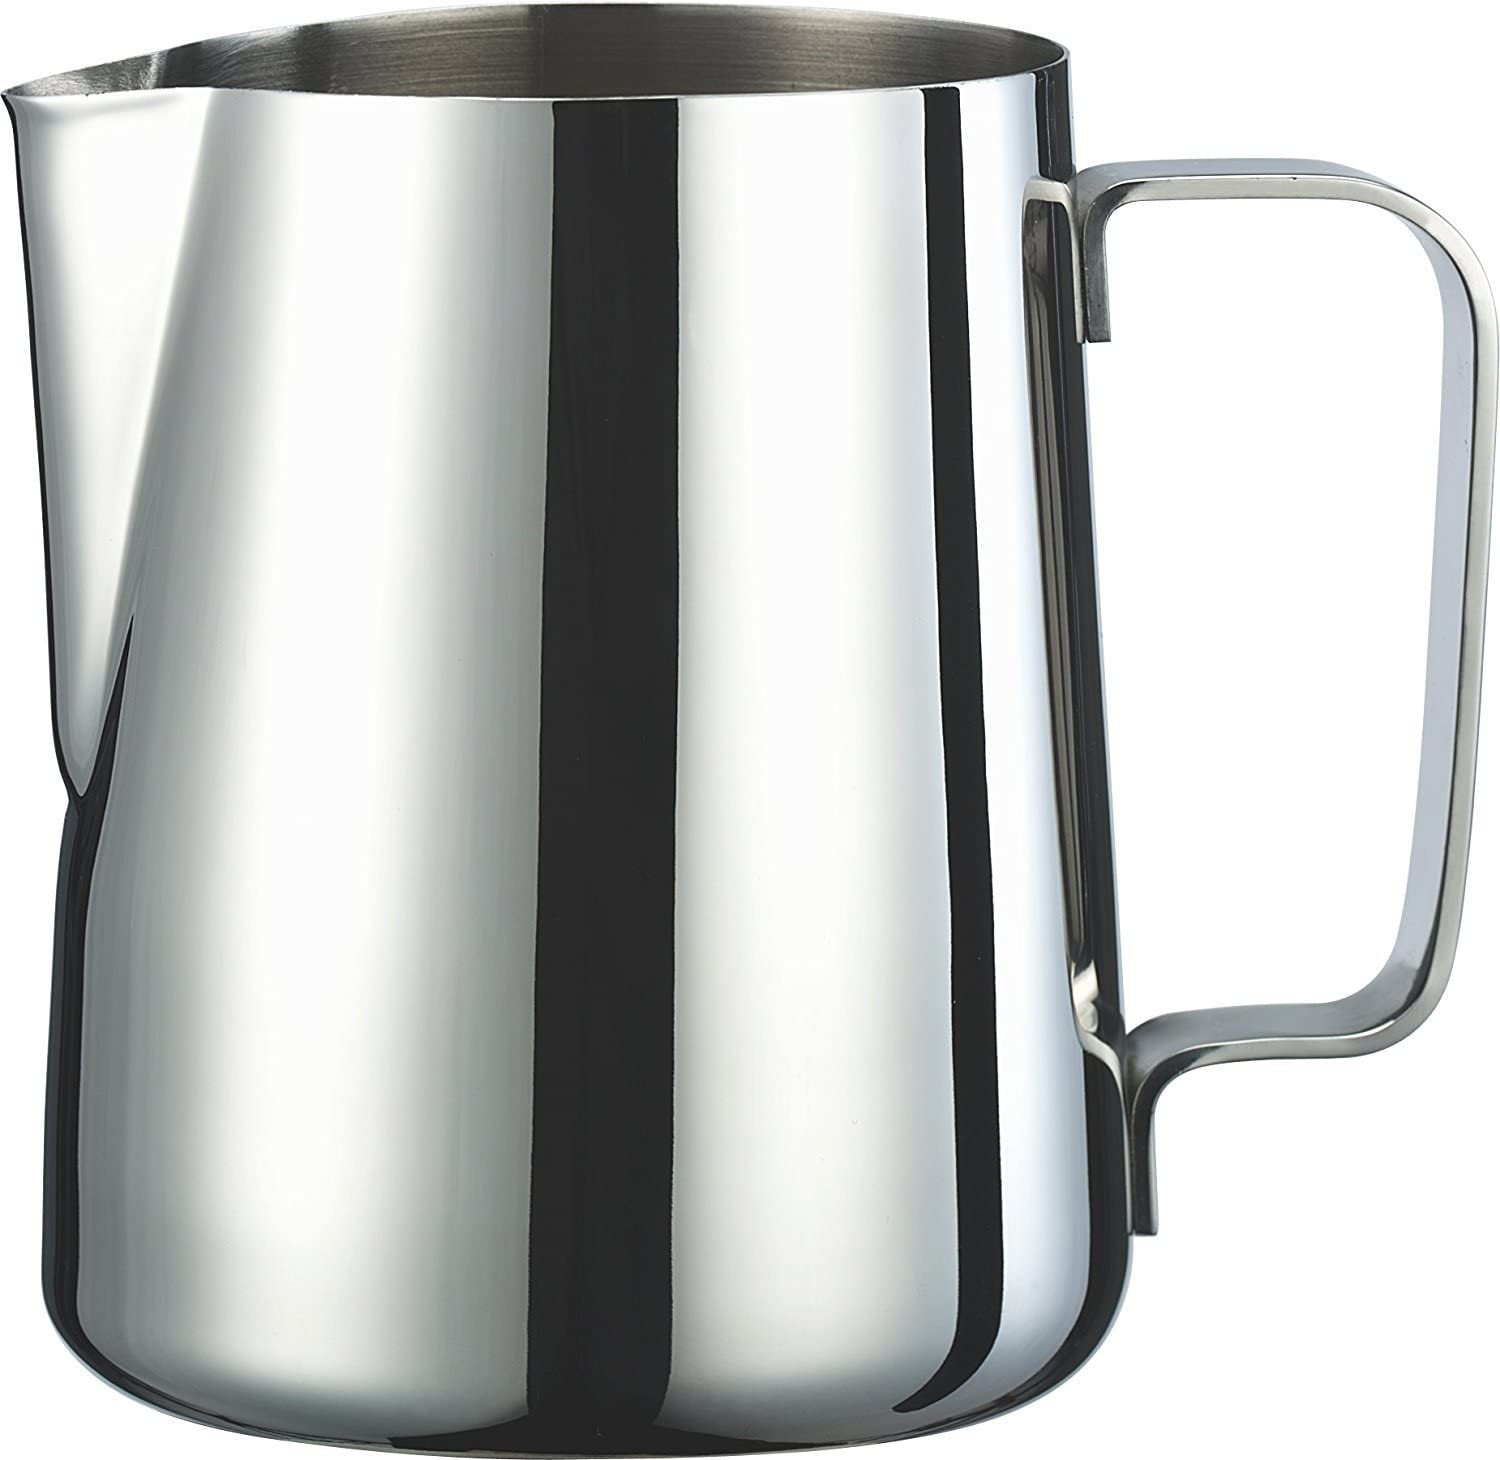 Cuissential Stainless Steel Milk Frothing Pitcher, 12 Oz., Frother Pitcher